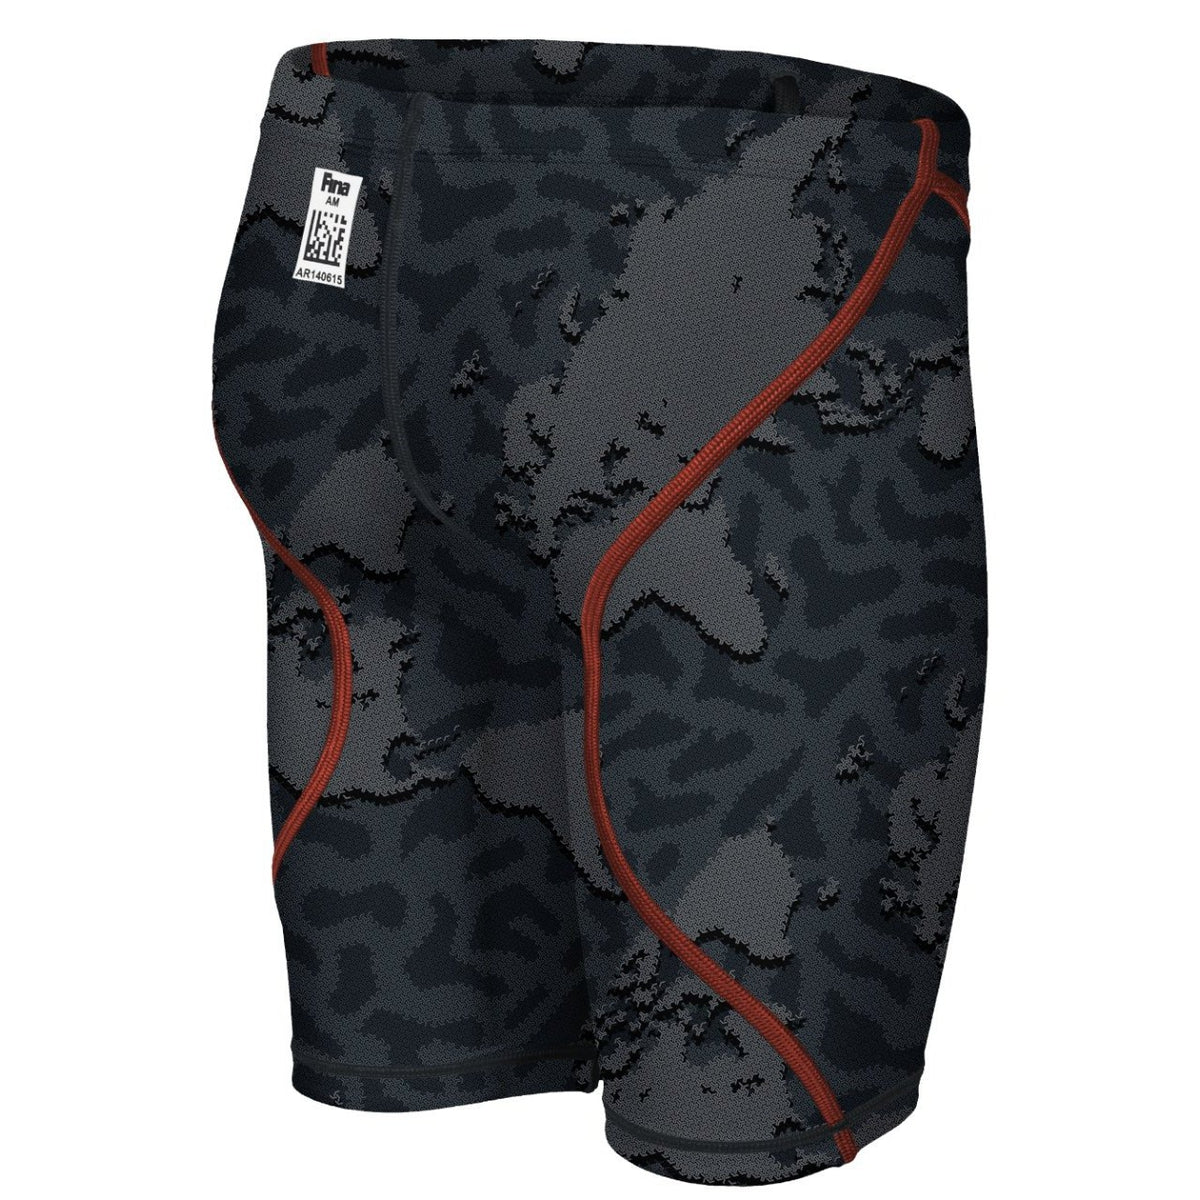 ARENA POWERSKIN ST 2.0 Boy's Jammer - Special Limited Edition - Kikko Map-TechSuits.ca